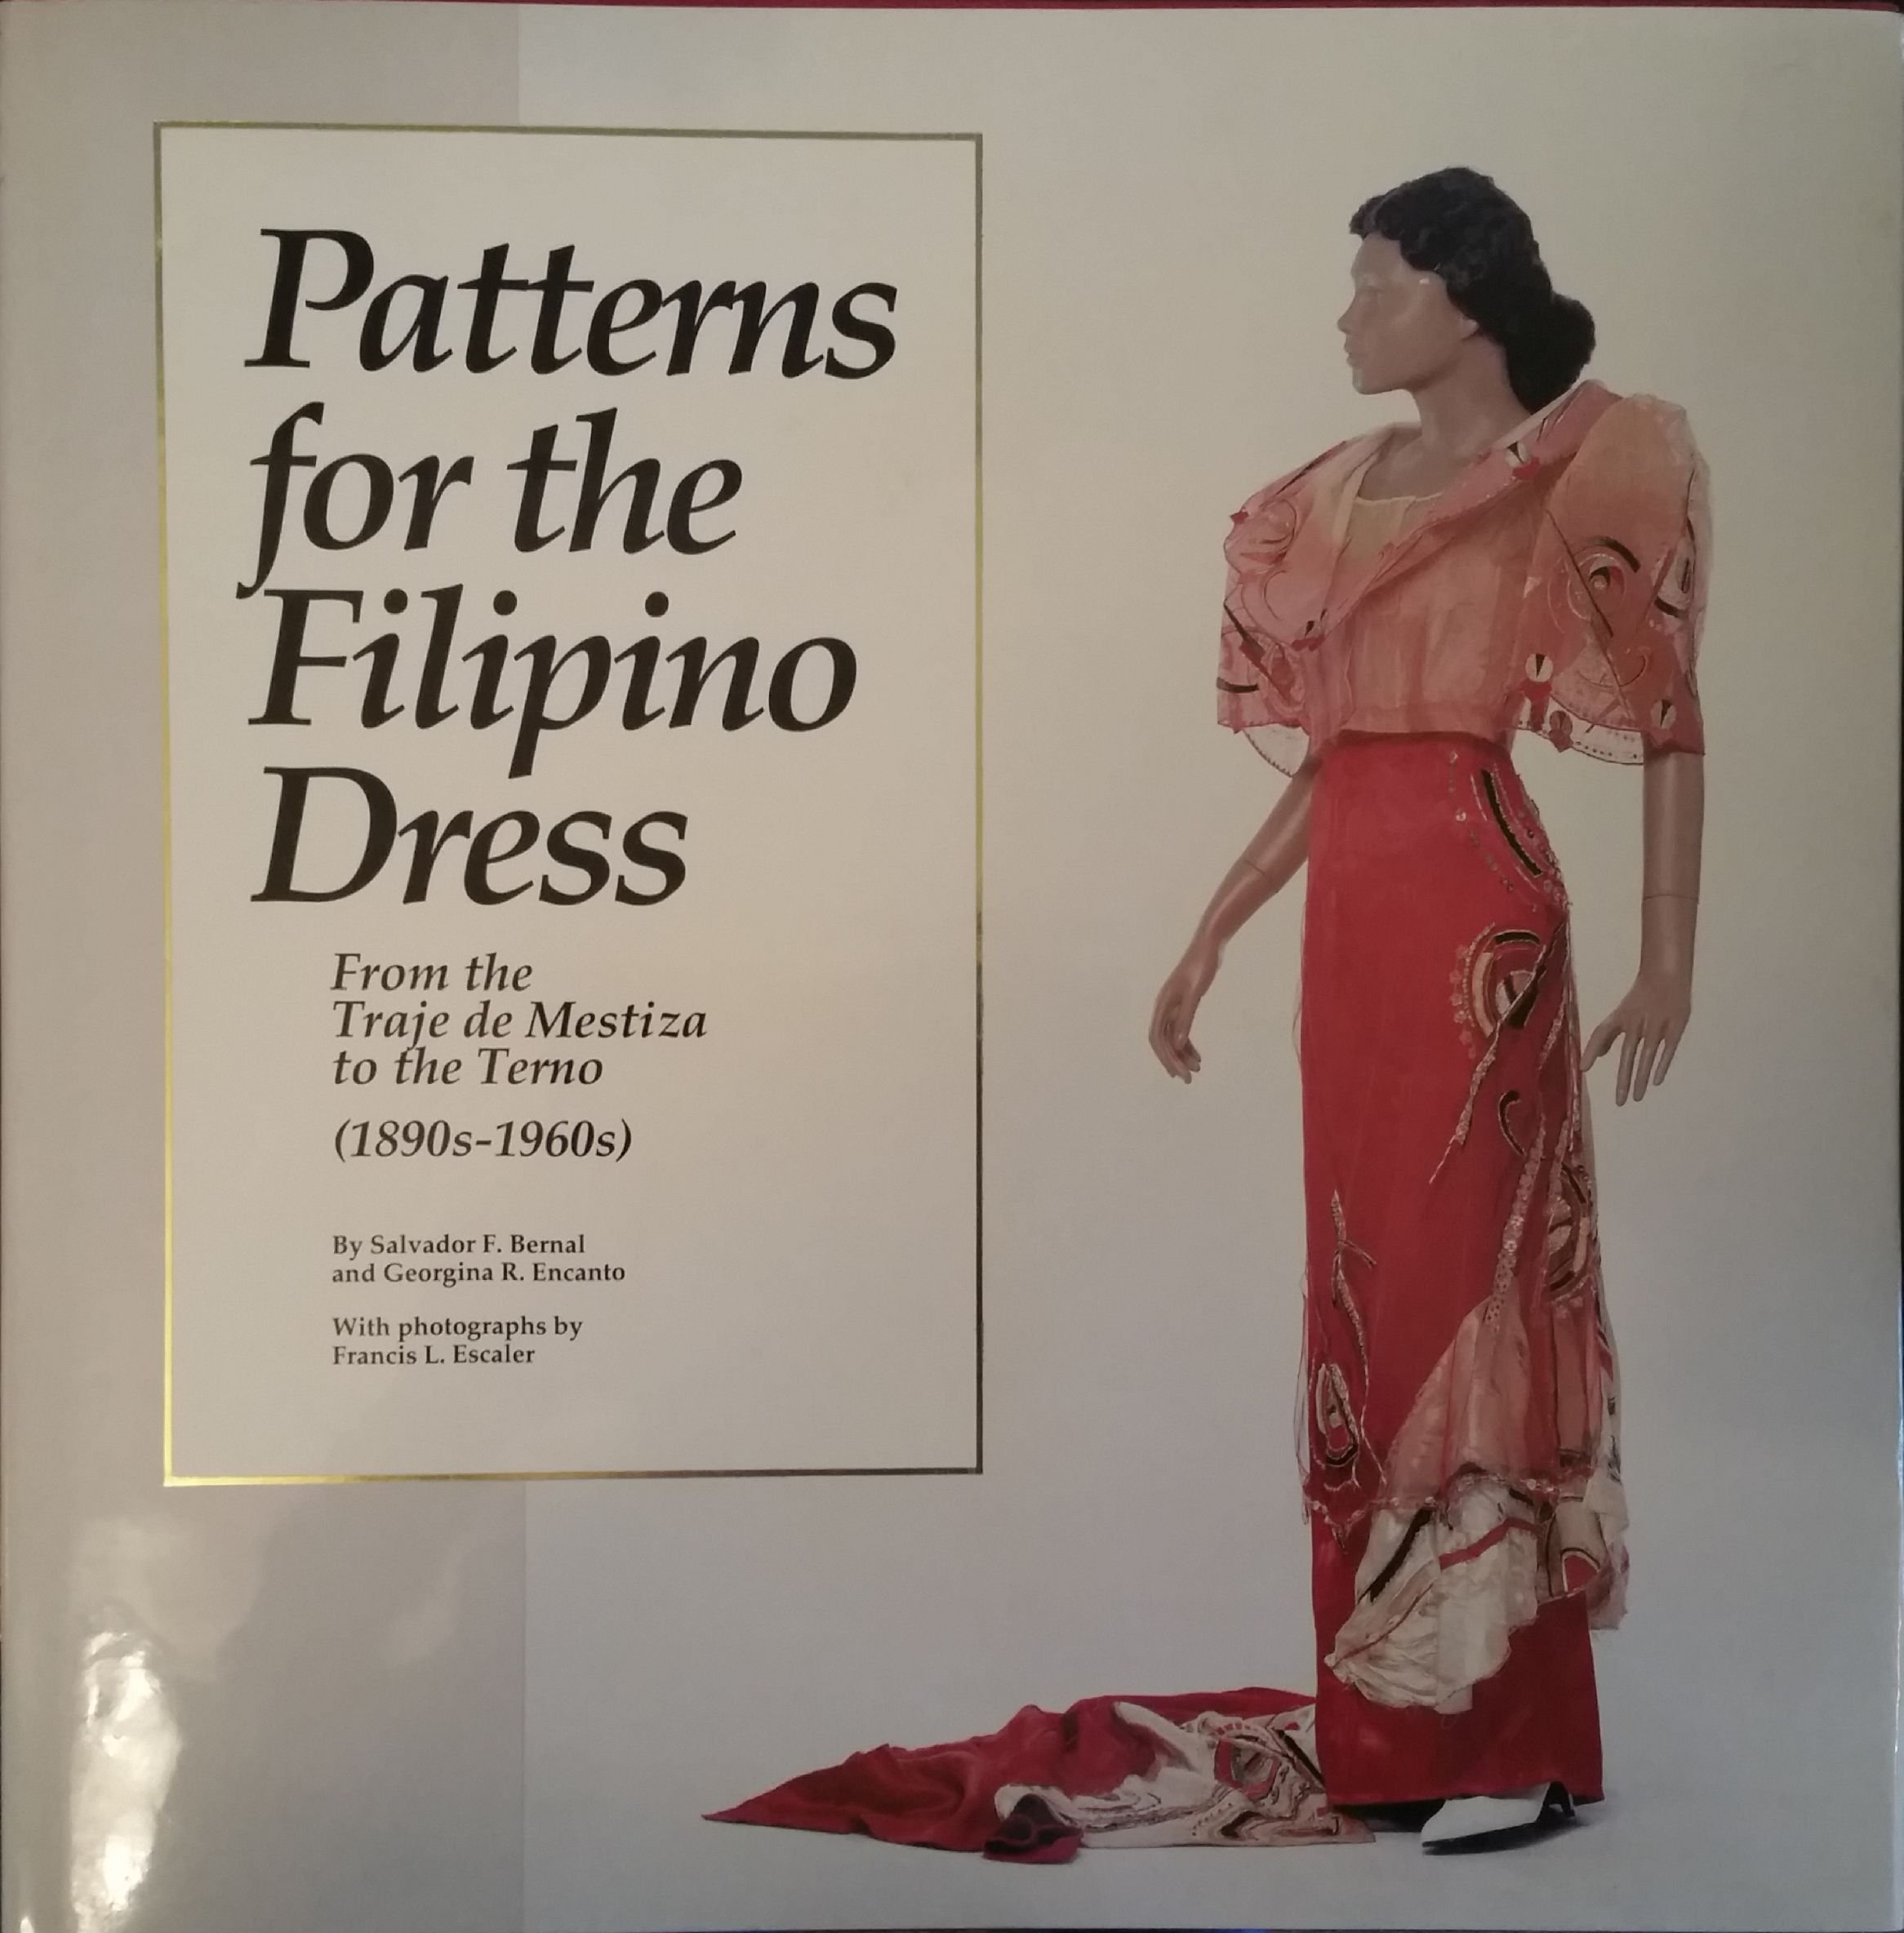 Amazon.com: Patterns for the Filipino dress: From the Traje ...